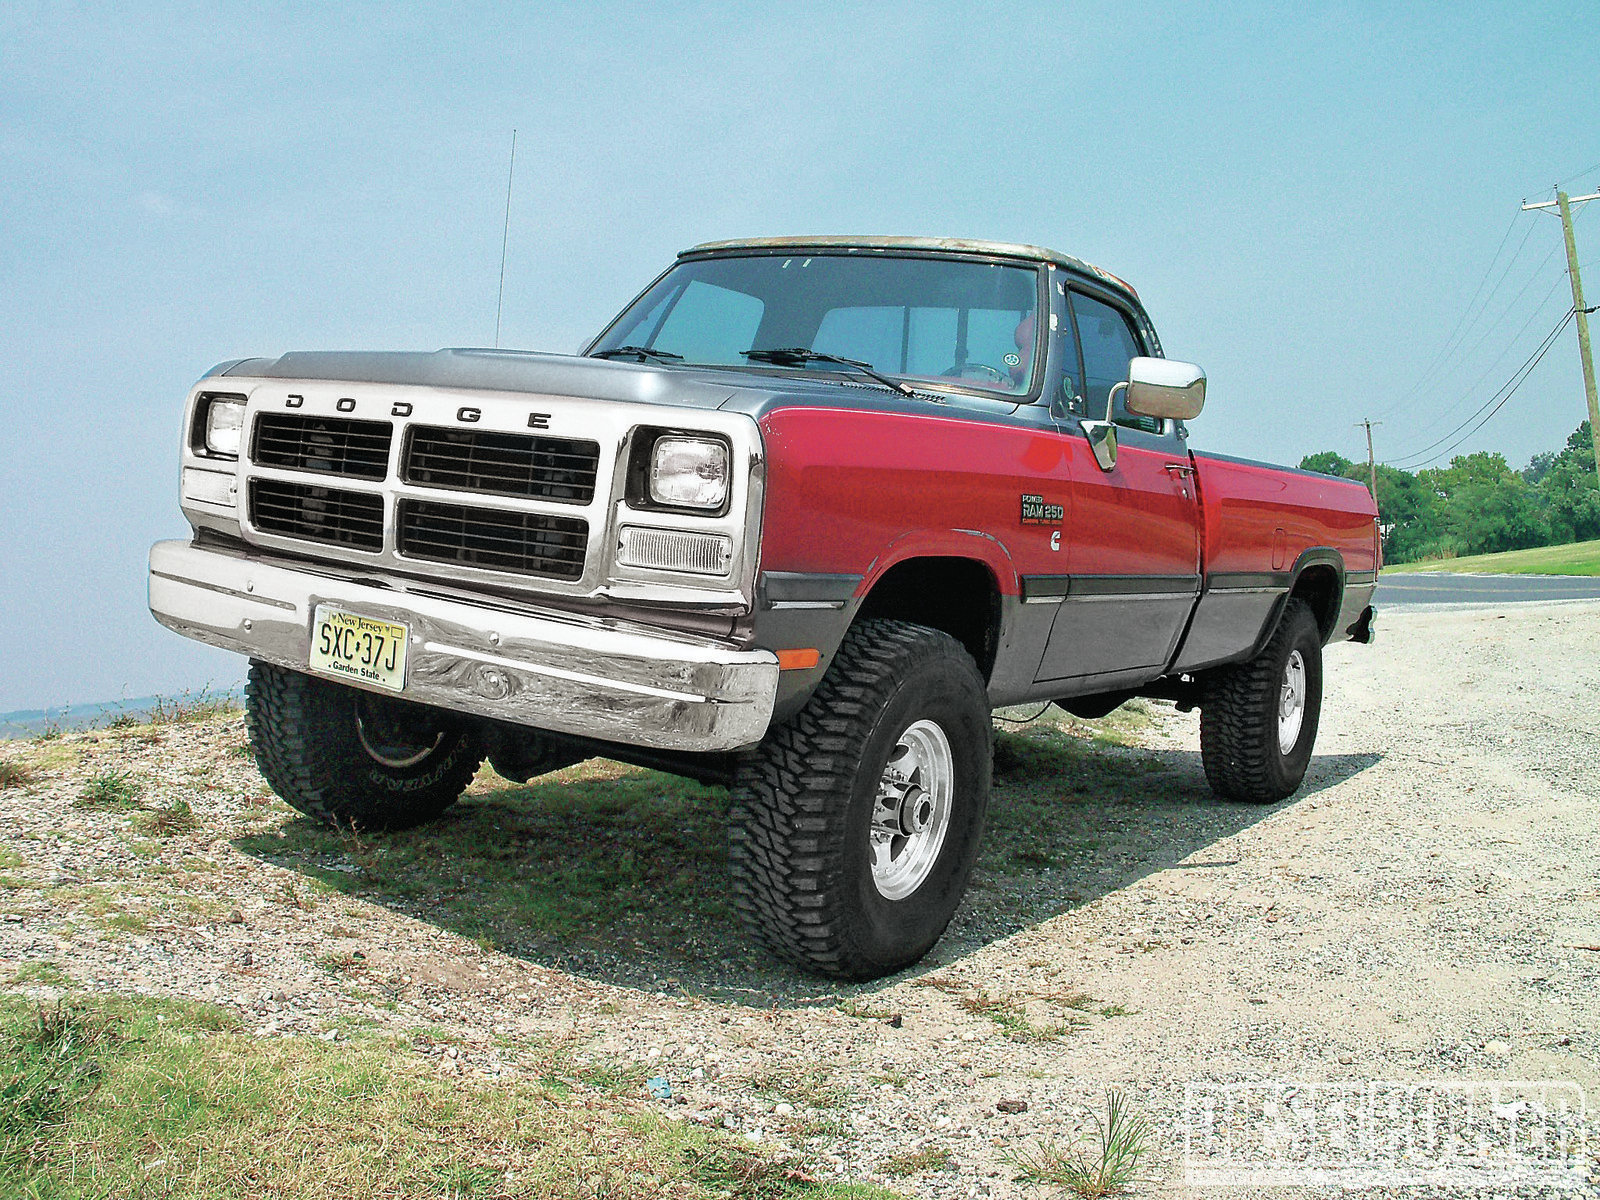 1991 dodge ram 250 information and photos zombiedrive. Black Bedroom Furniture Sets. Home Design Ideas